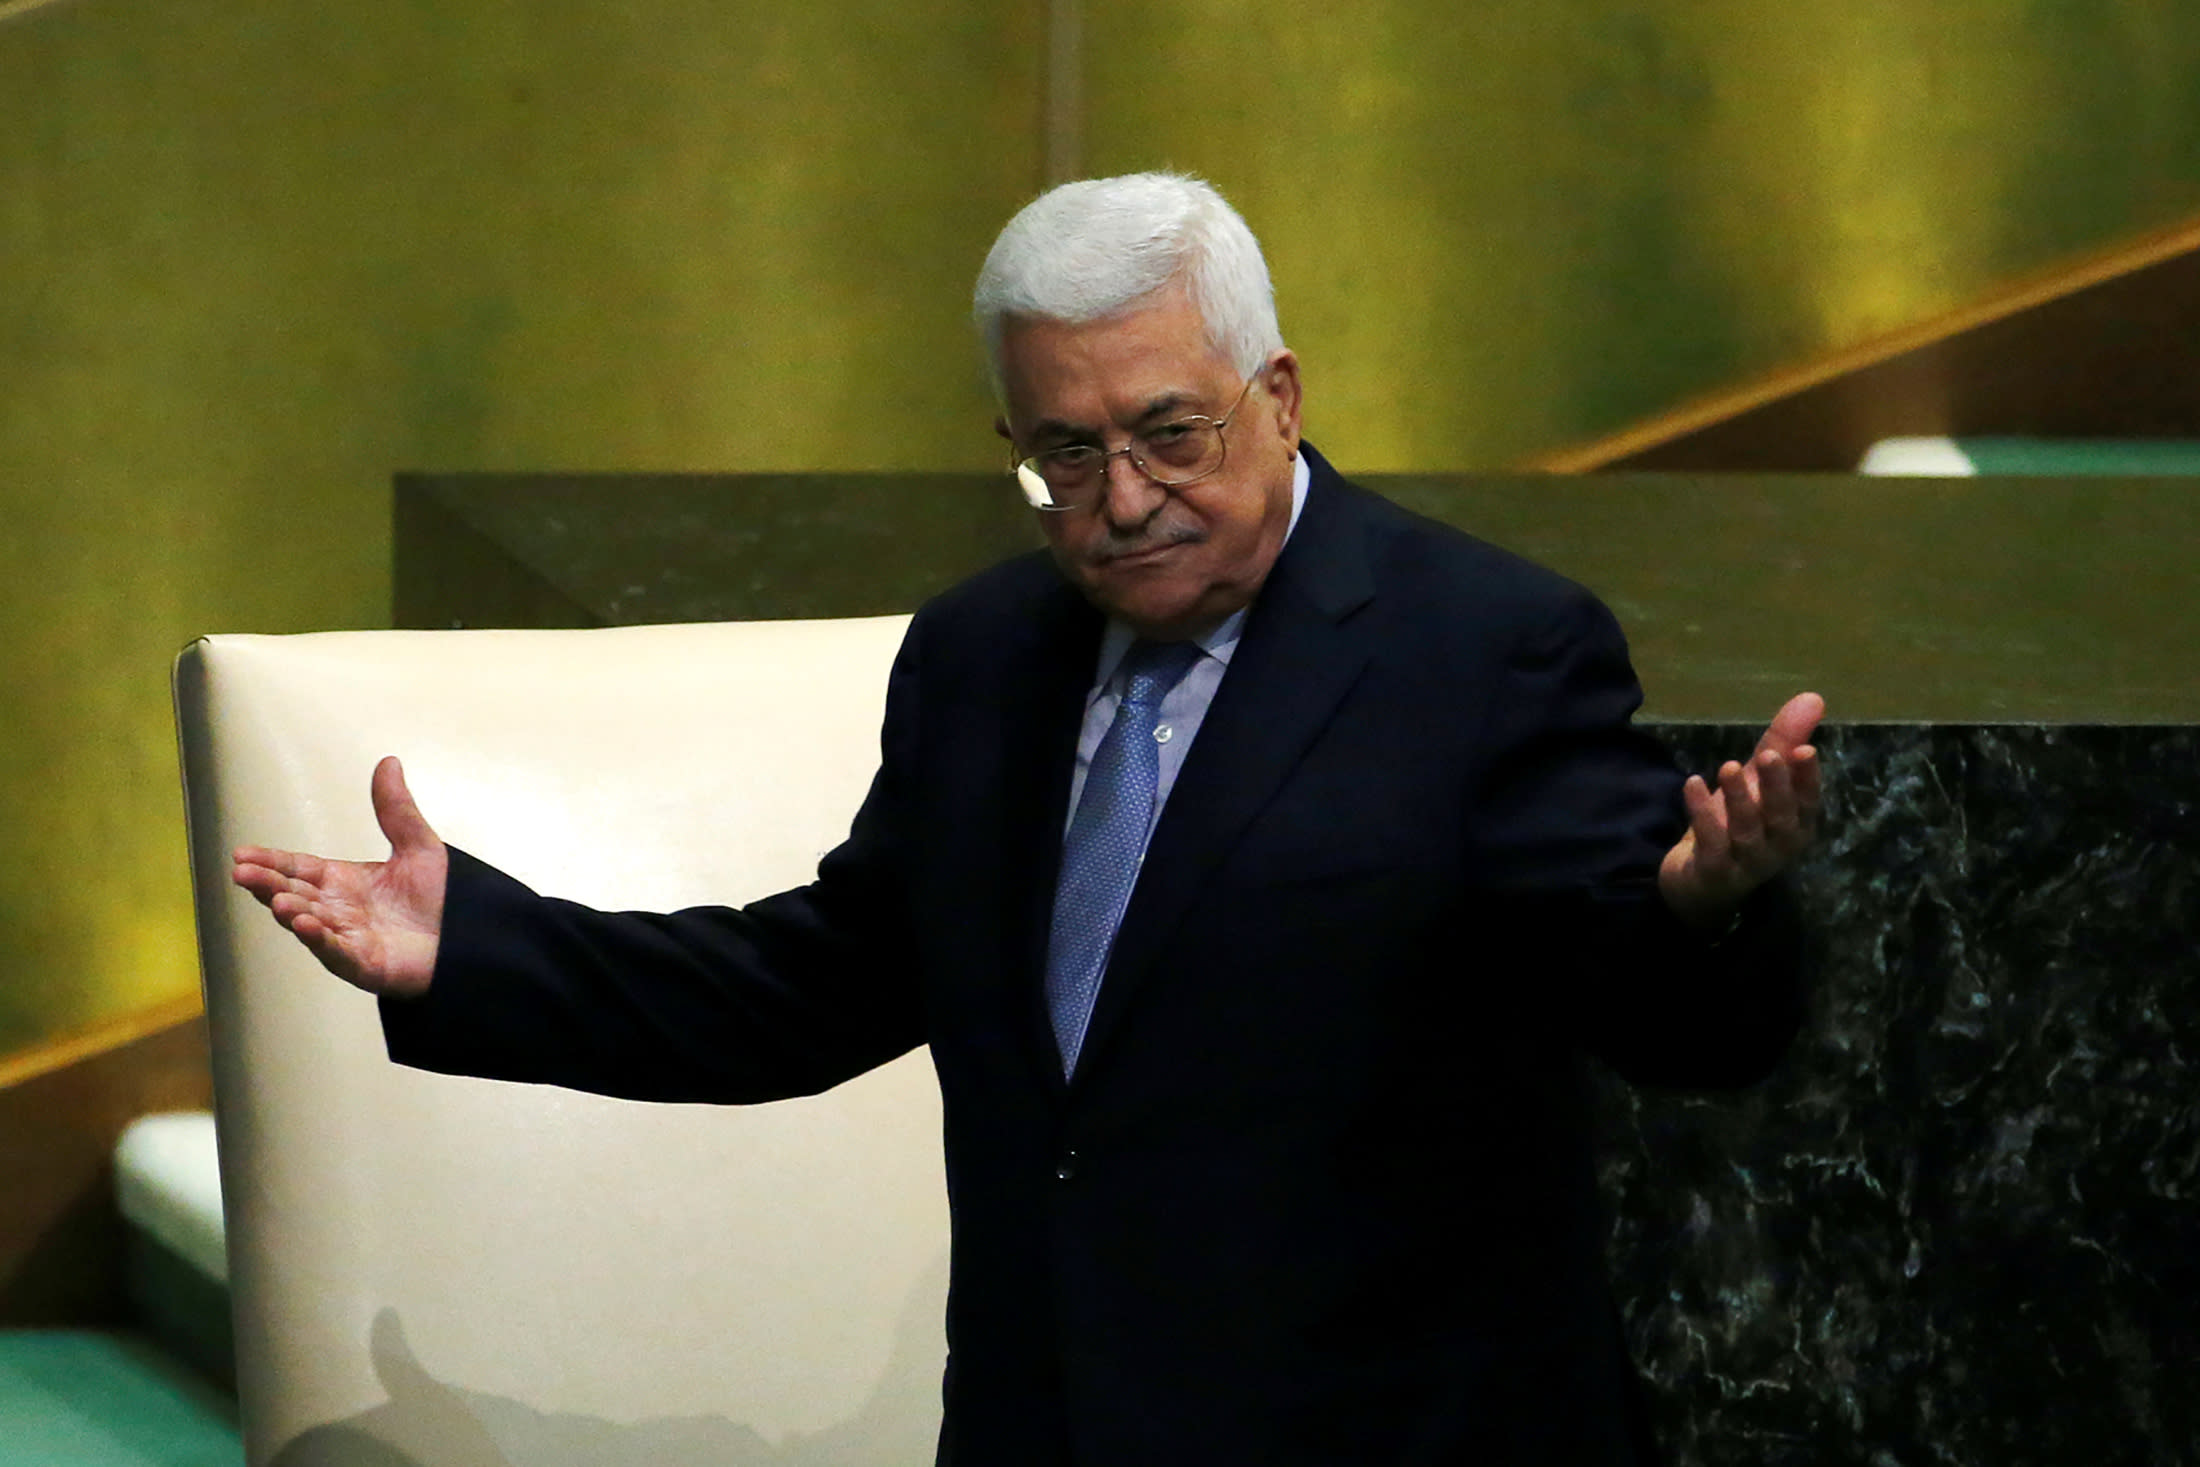 Palestinian President to Address UN Security Council